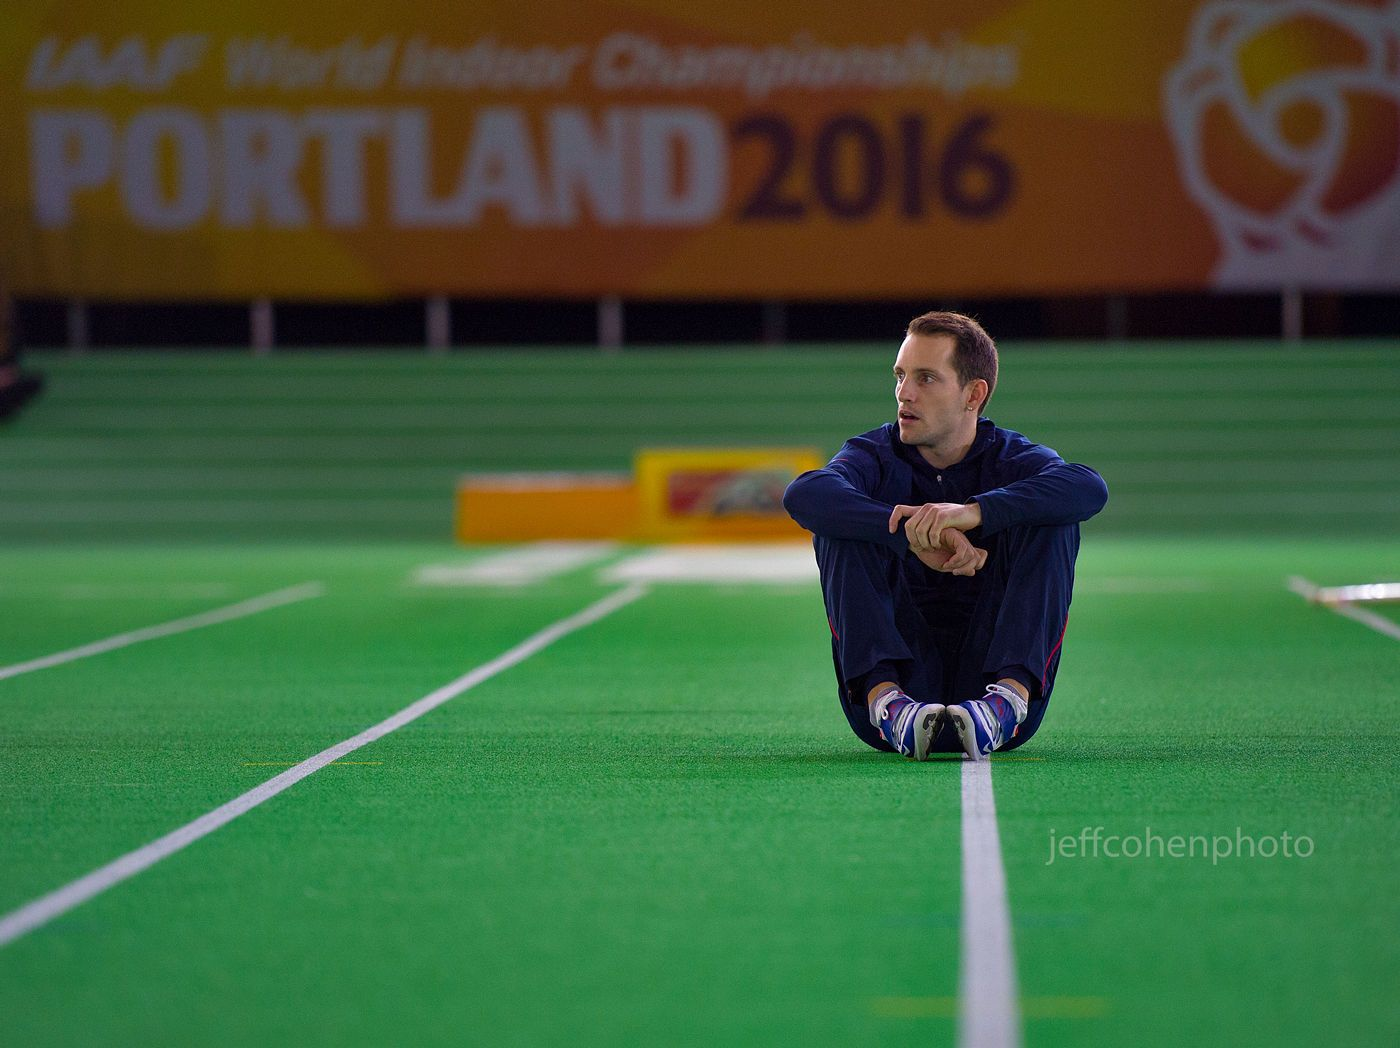 1portland2016_day1_lavillenie_pv_sit_jeff_cohen_photo_908_web.jpg